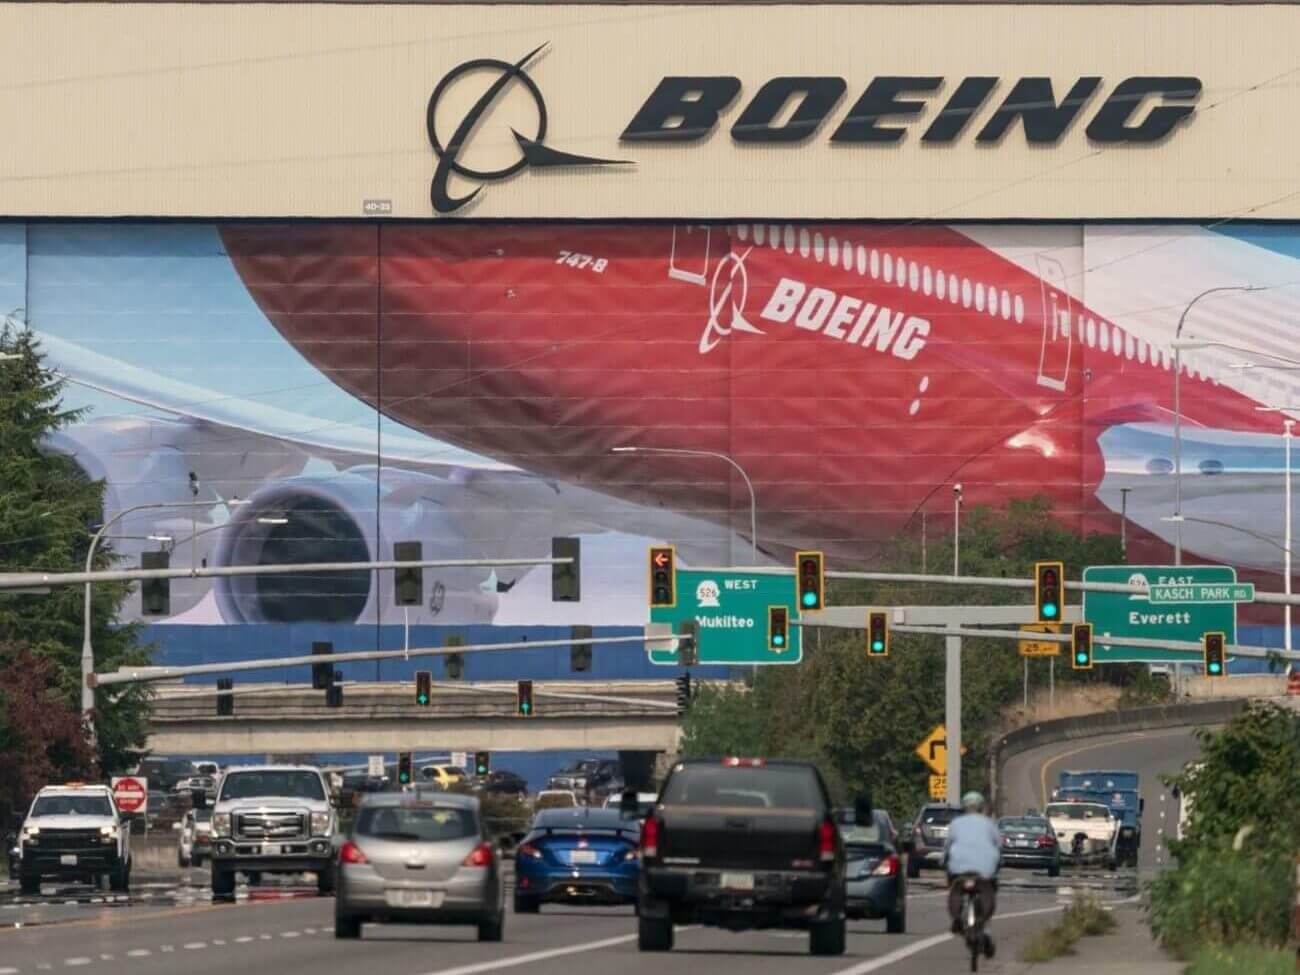 Boeing Is the Newest Firm to Fracture out a Hostile Exchange Ambiance